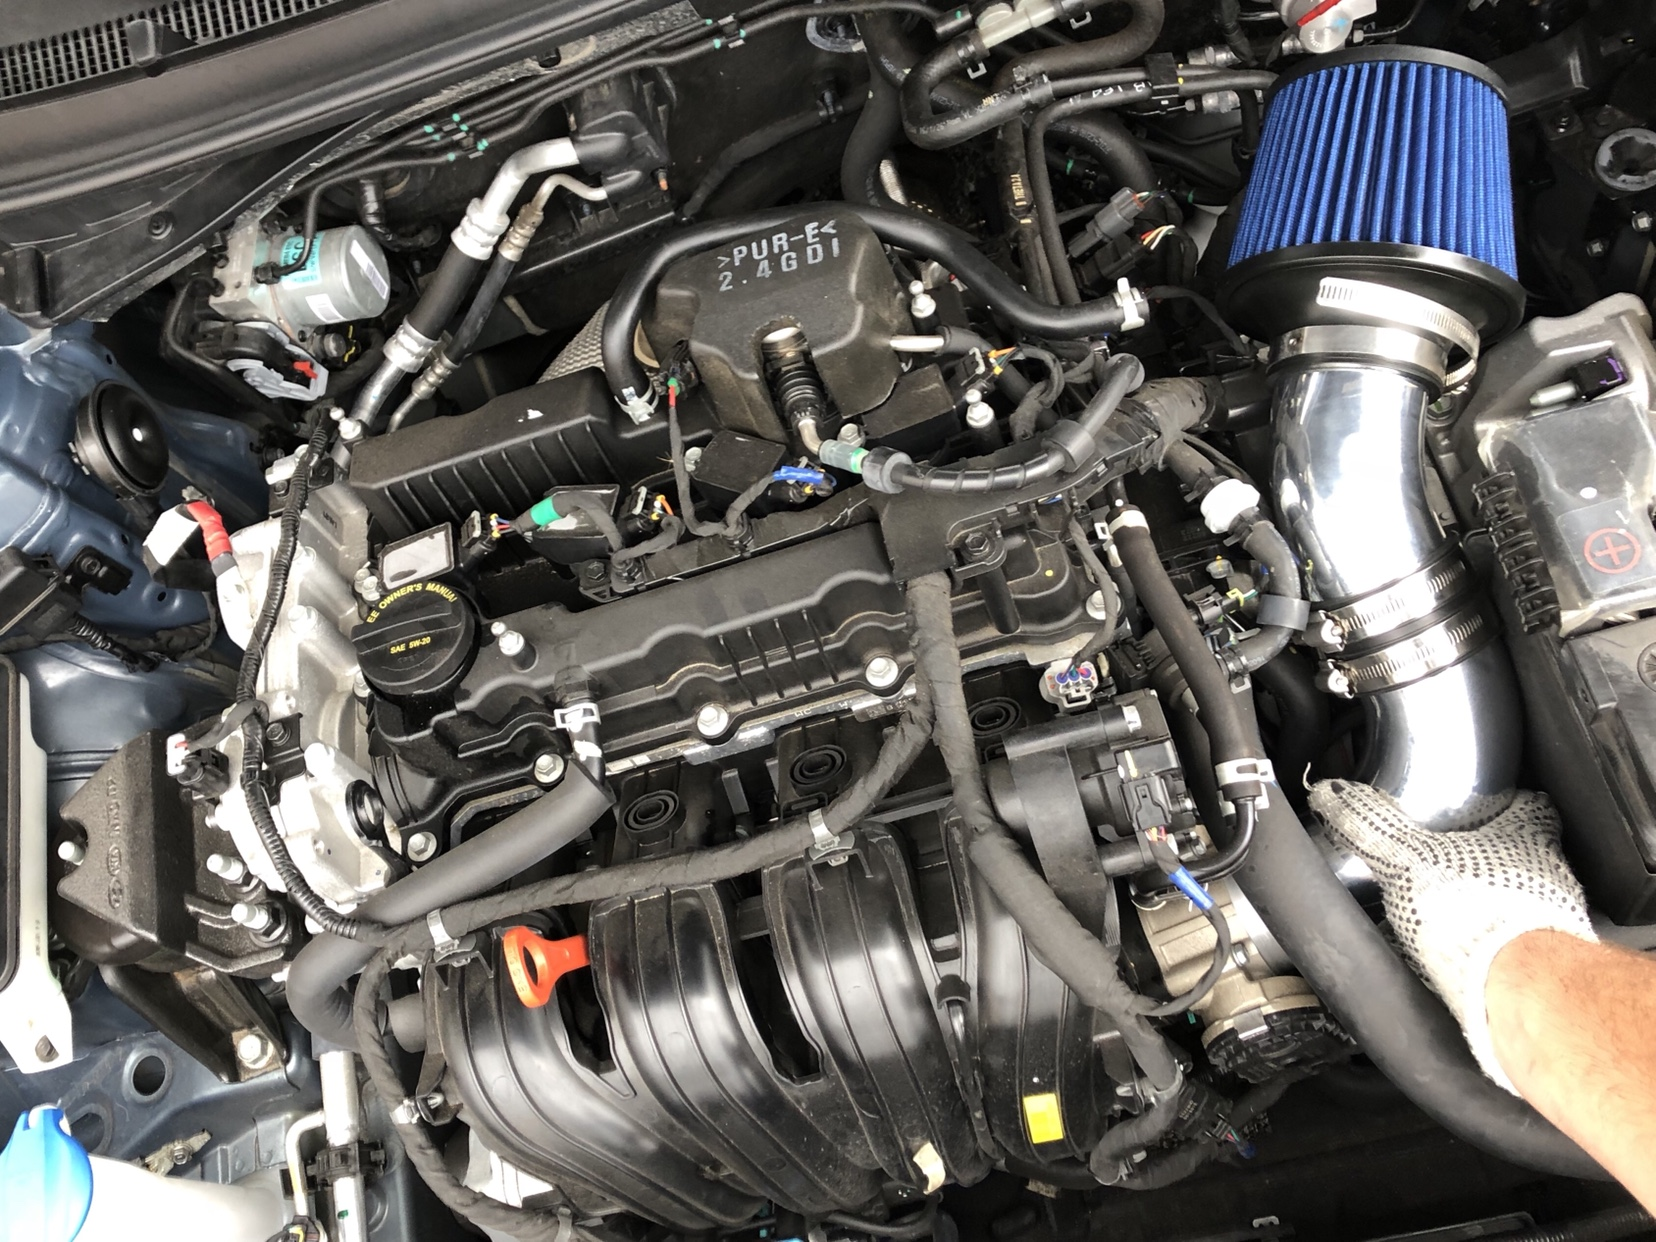 intake air hyundai cold sonata pcv build vacuum tapatalk update lines forums sent iphone using